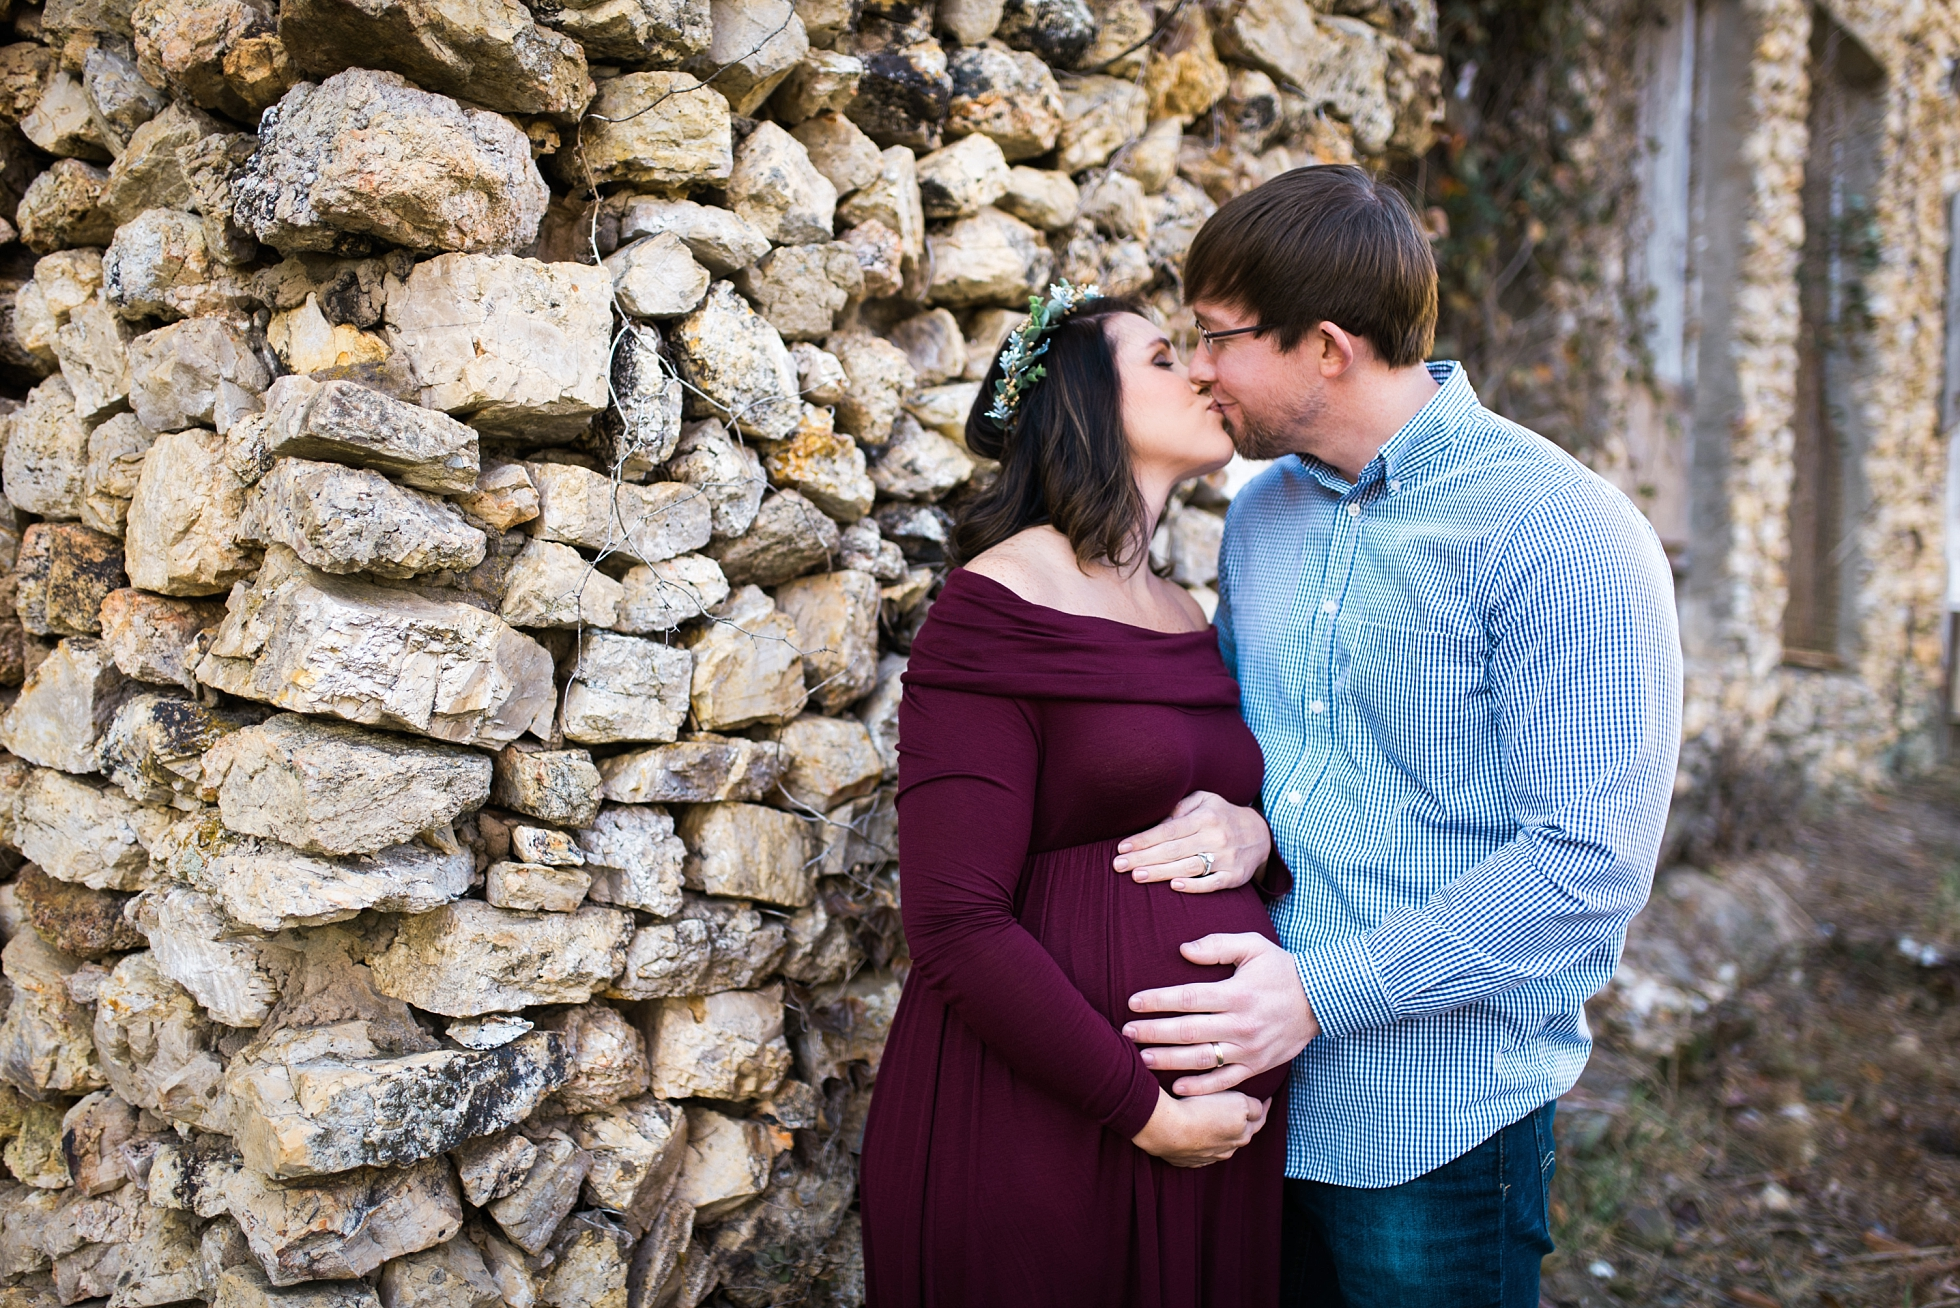 LUNSFORD MATERNITY | SPRINGVILLE, AL | LAURA WILKERSON PHOTOGRAPHY